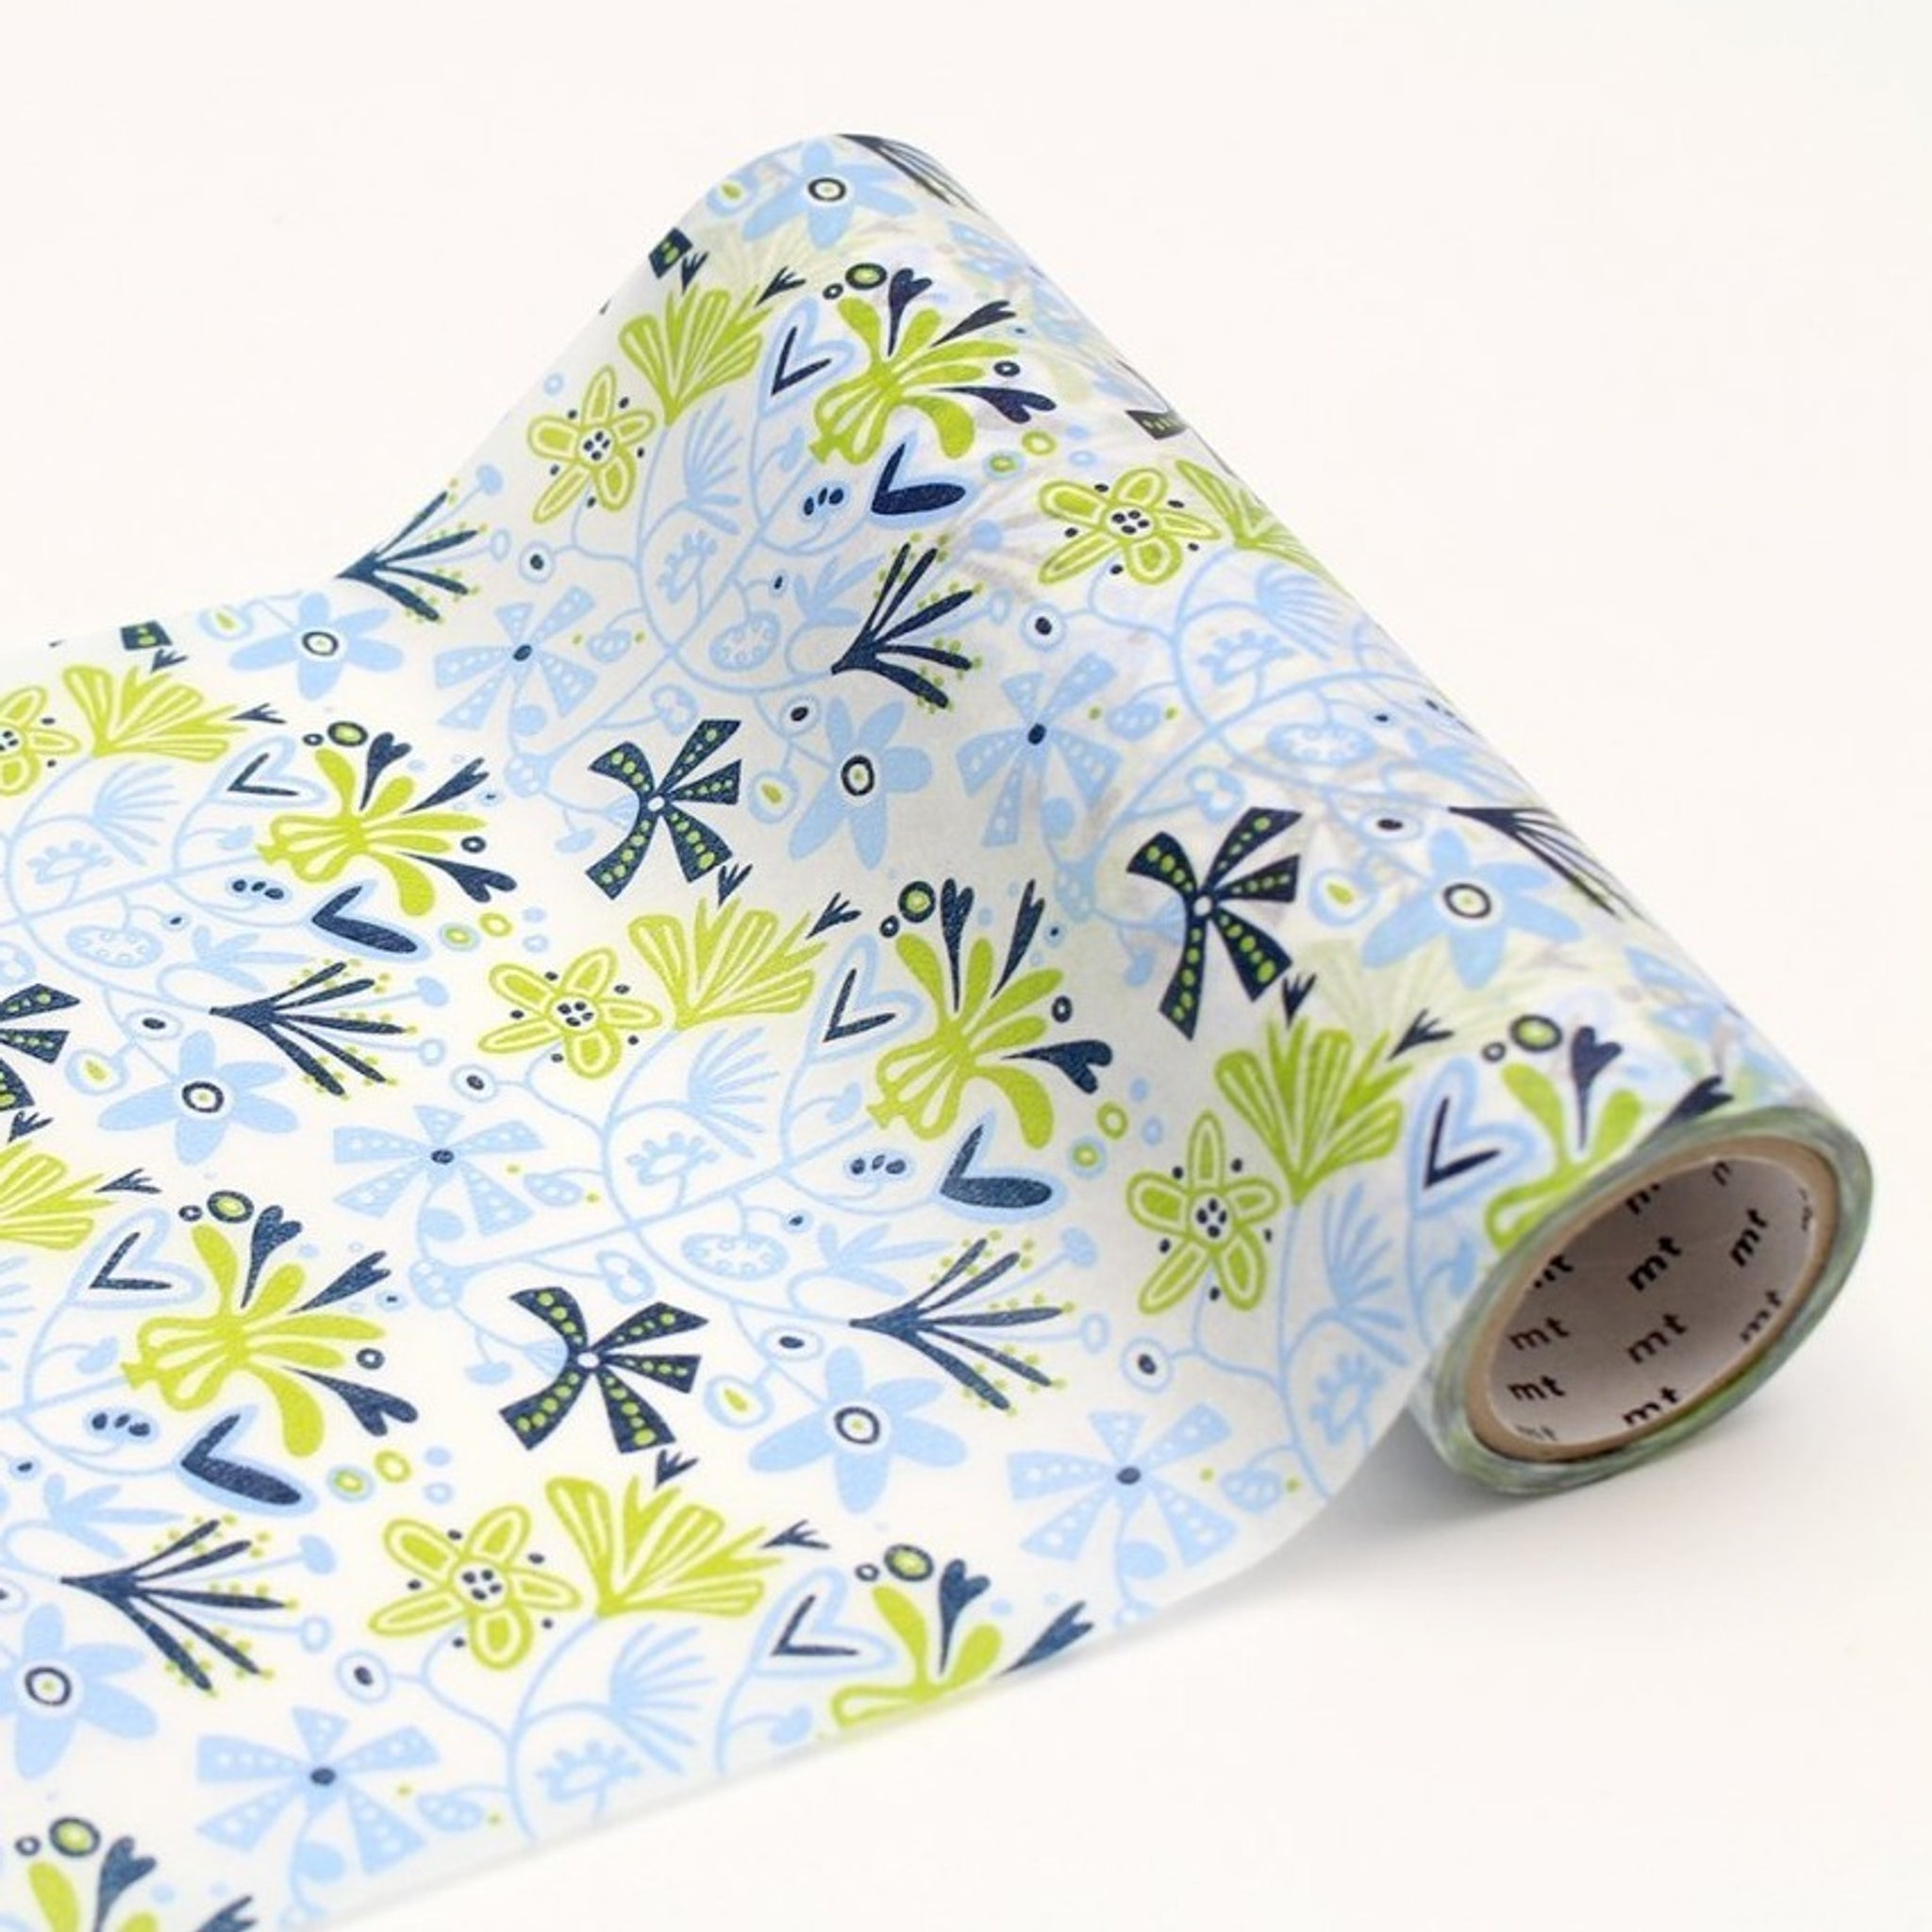 MT Wrap S Bengt & Lotta Alma Blue